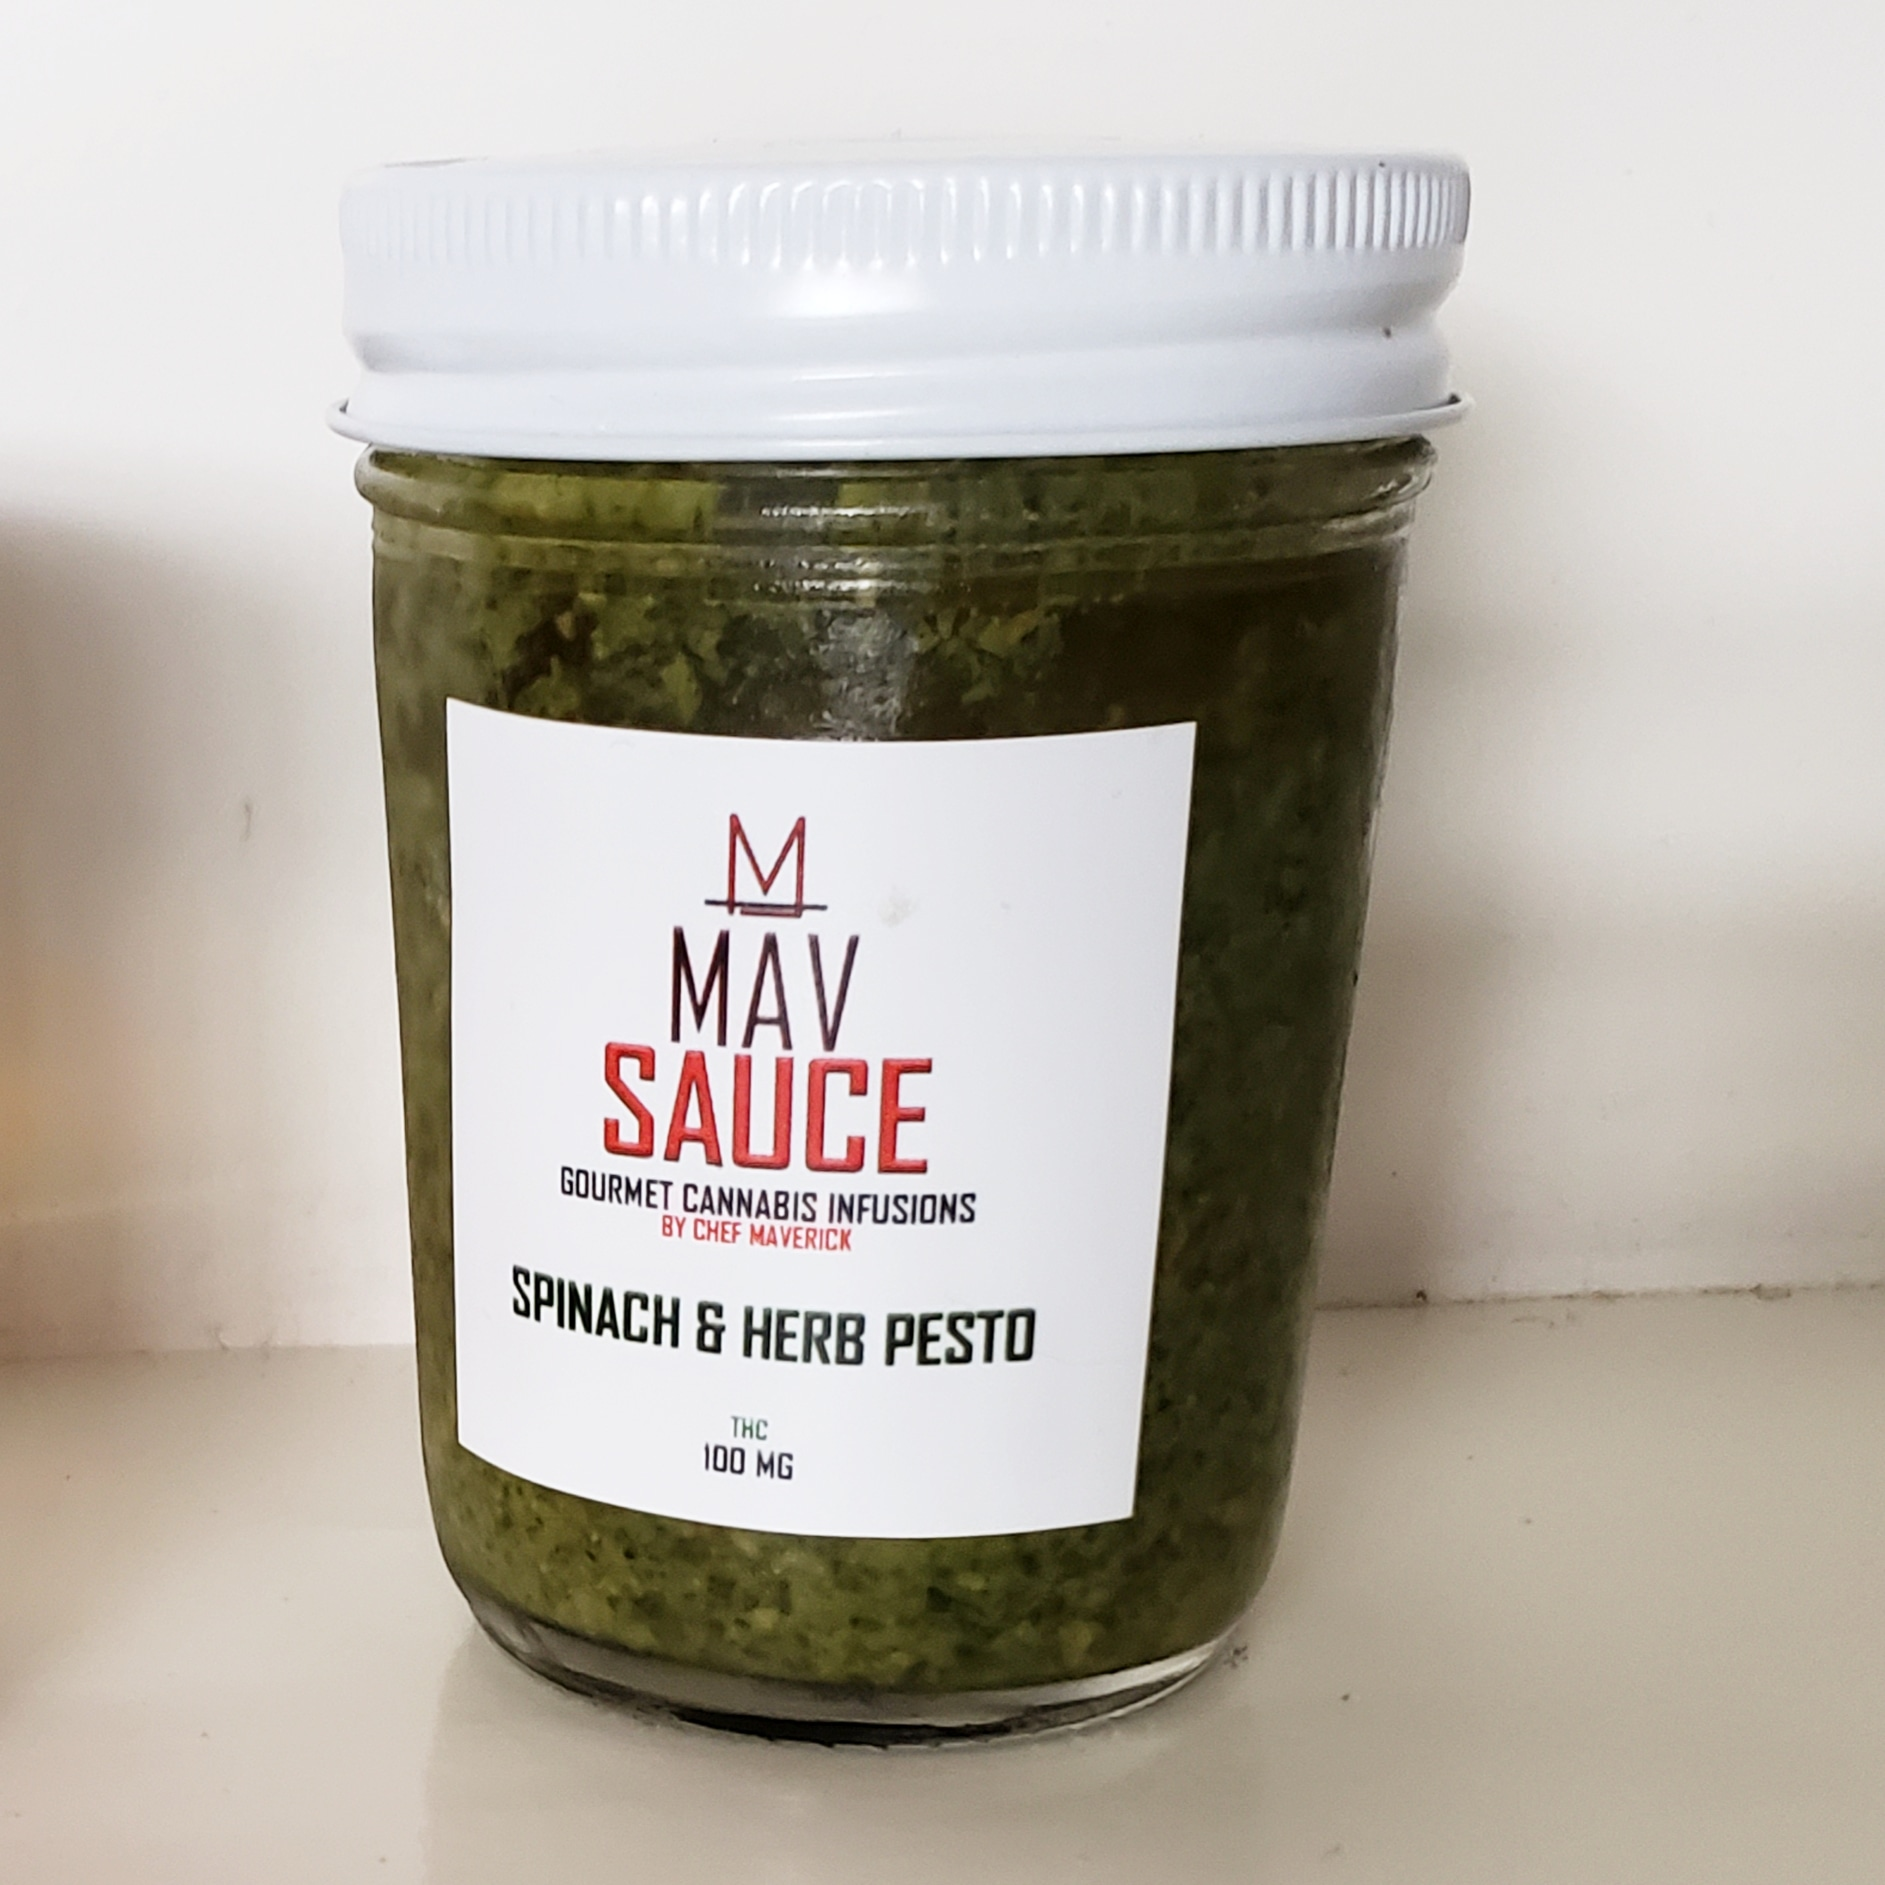 SPINACH & HERB PESTO   CHEF MAVERICK'S SPECIAL RECIPE INFUSED PESTO COMES PACKED WITH TONS OF FLAVOR. MADE WITH SPINACH, BASIL, PARSLEY, GARLIC, OLIVE OIL, PARMESAN CHEESE ALONG WITH A SPECIAL BLEND OF SPICES AND SEASONINGS.   AVAILABLE DOSES:  8 OZ - 100 MG   GLUTEN FREE, SOY FREE